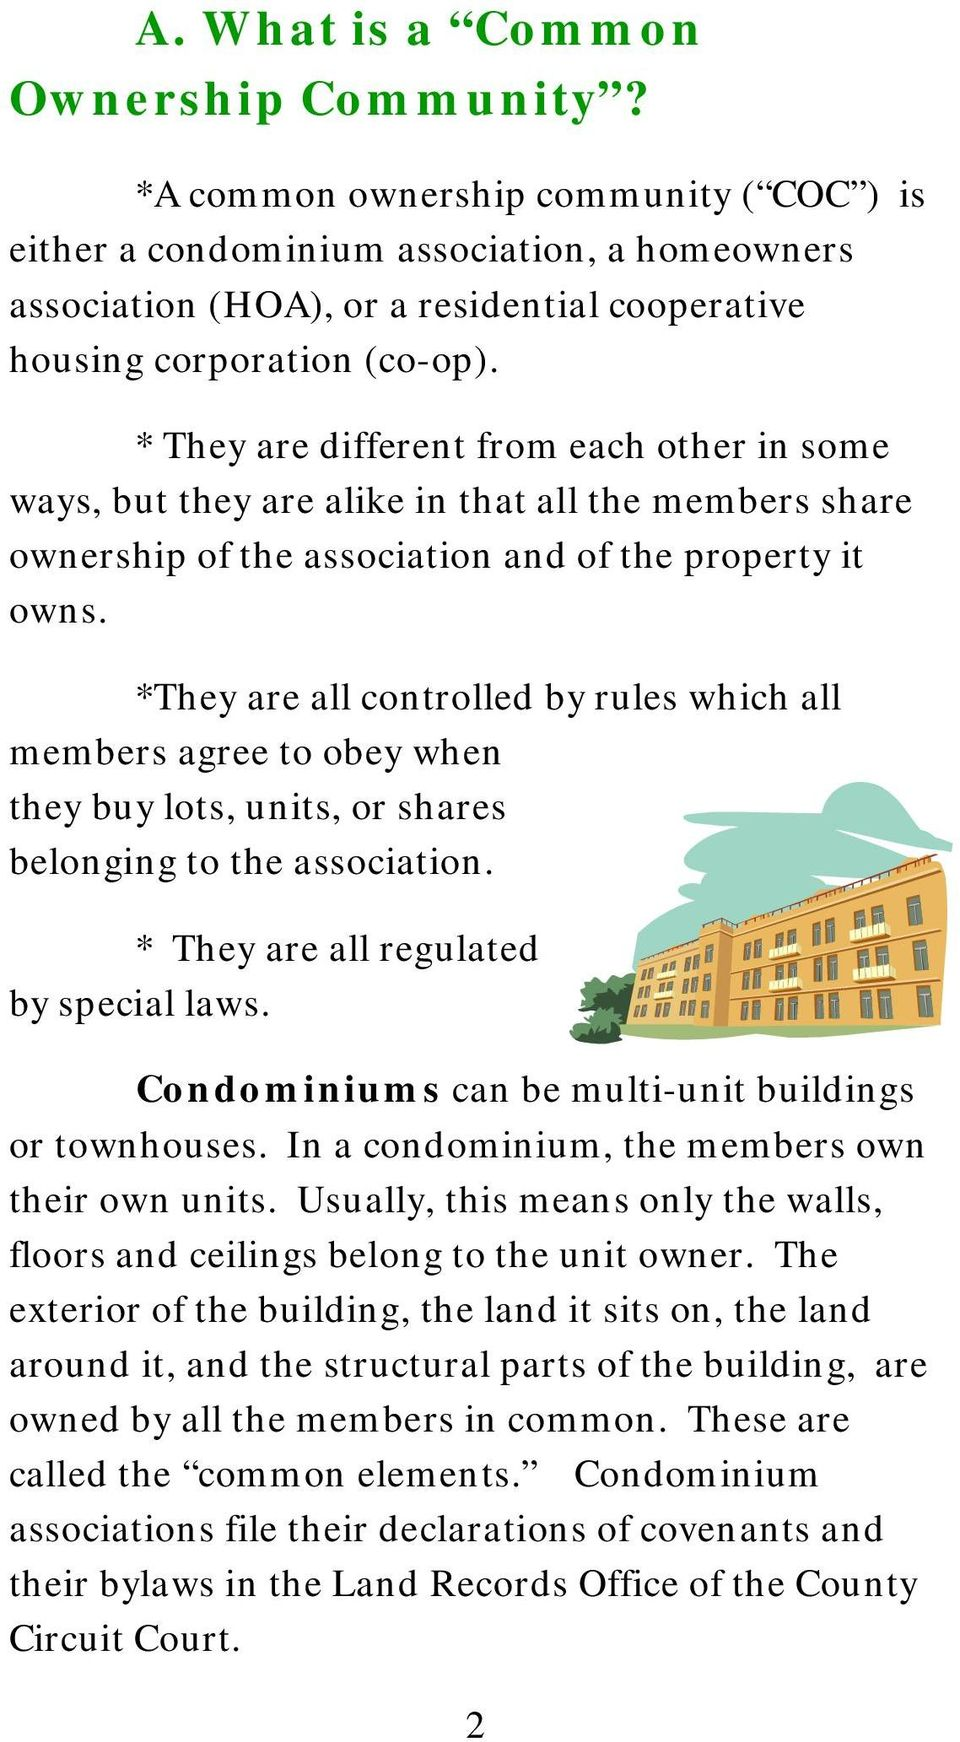 * They are different from each other in some ways, but they are alike in that all the members share ownership of the association and of the property it owns.